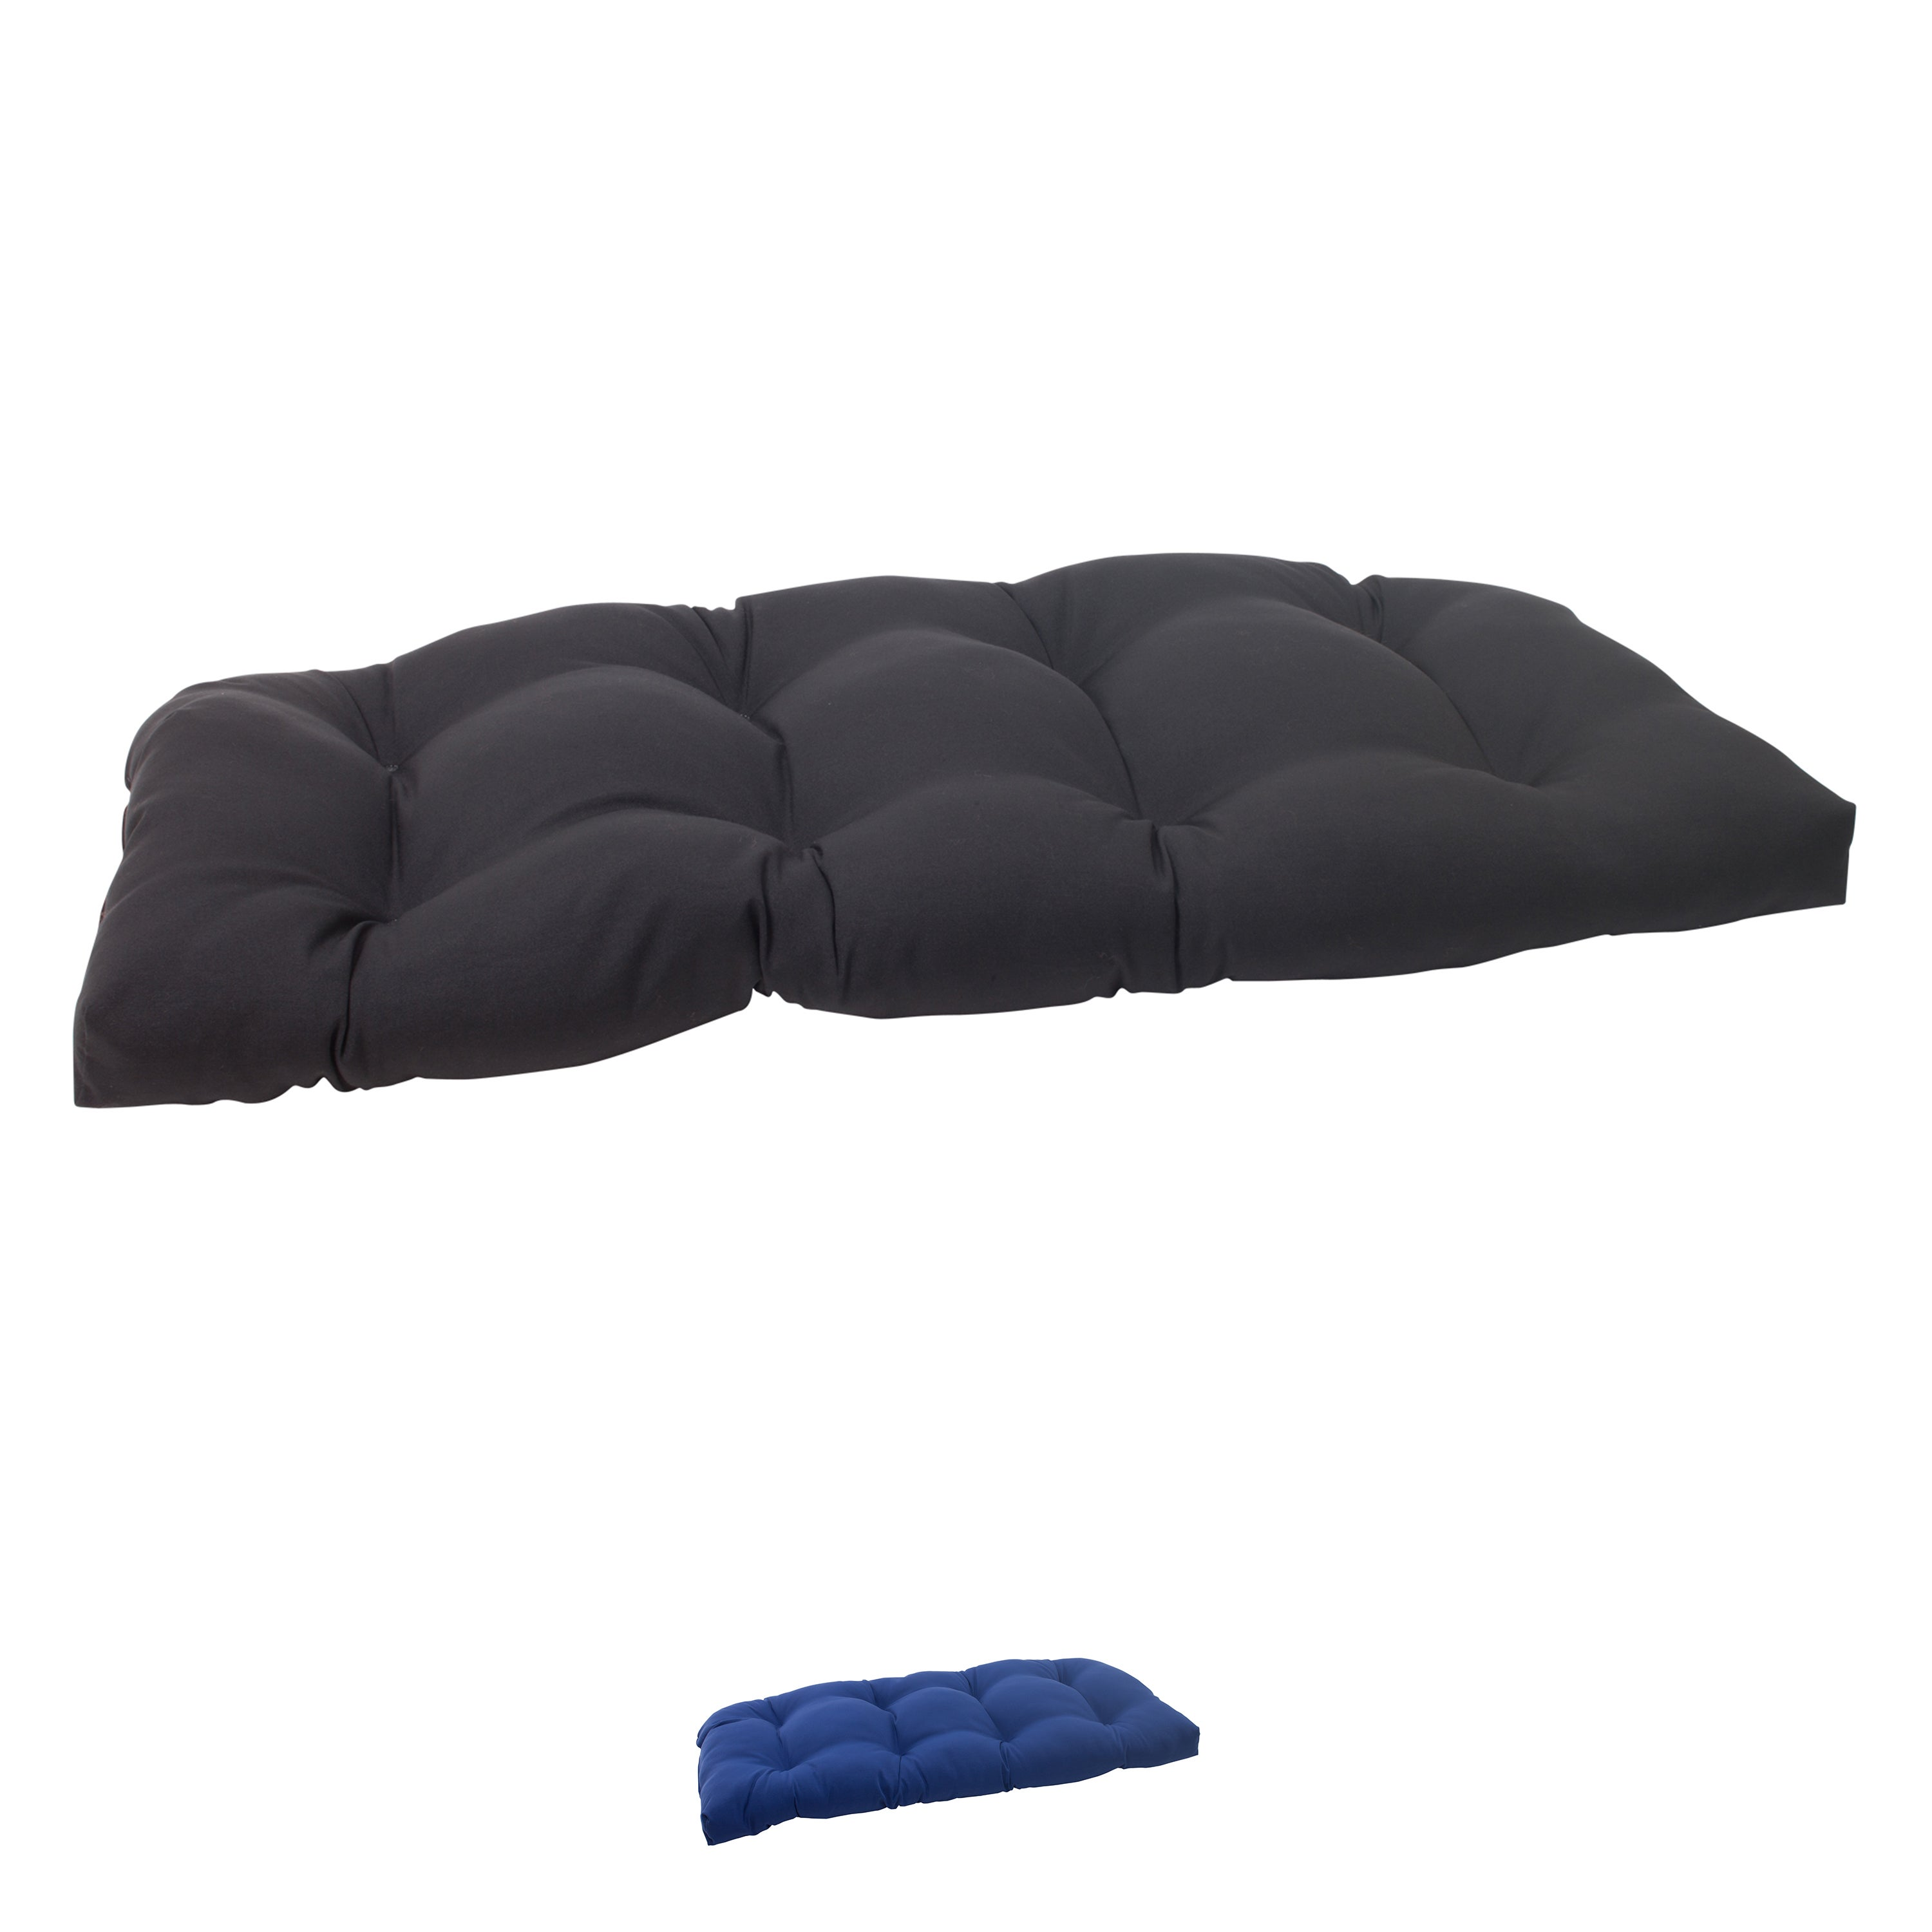 Pillow Perfect Outdoor Fresco Tufted Wicker Loveseat Cushion Free Shipping Today Com 7858145